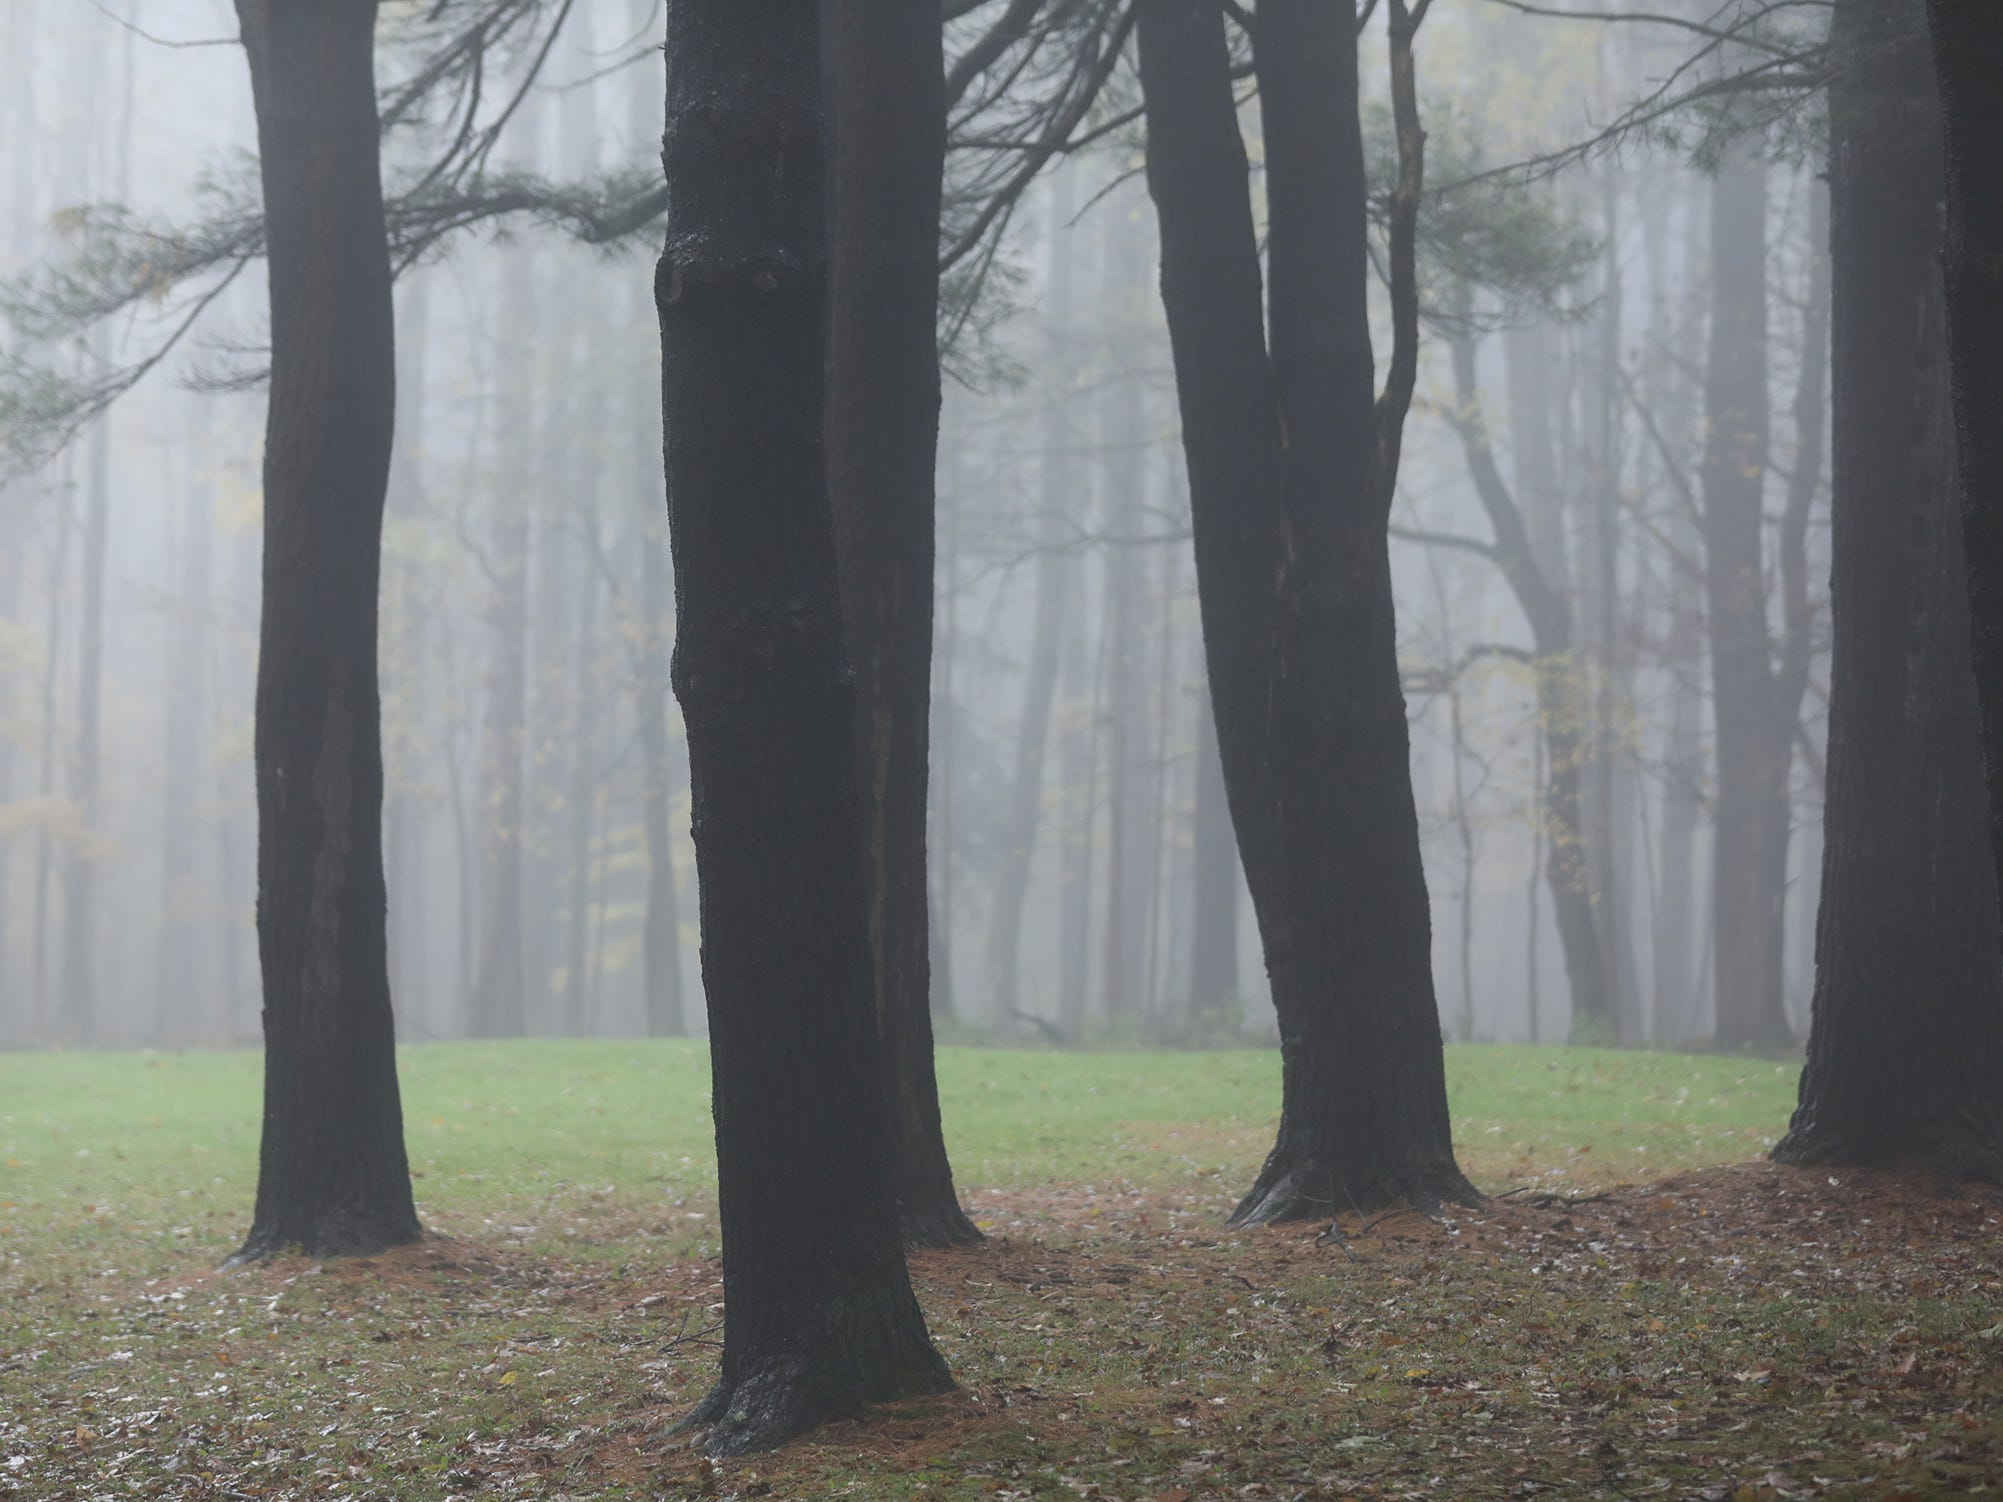 Trunks look like just vertical lines in the thick fog at Letchworth State Park.